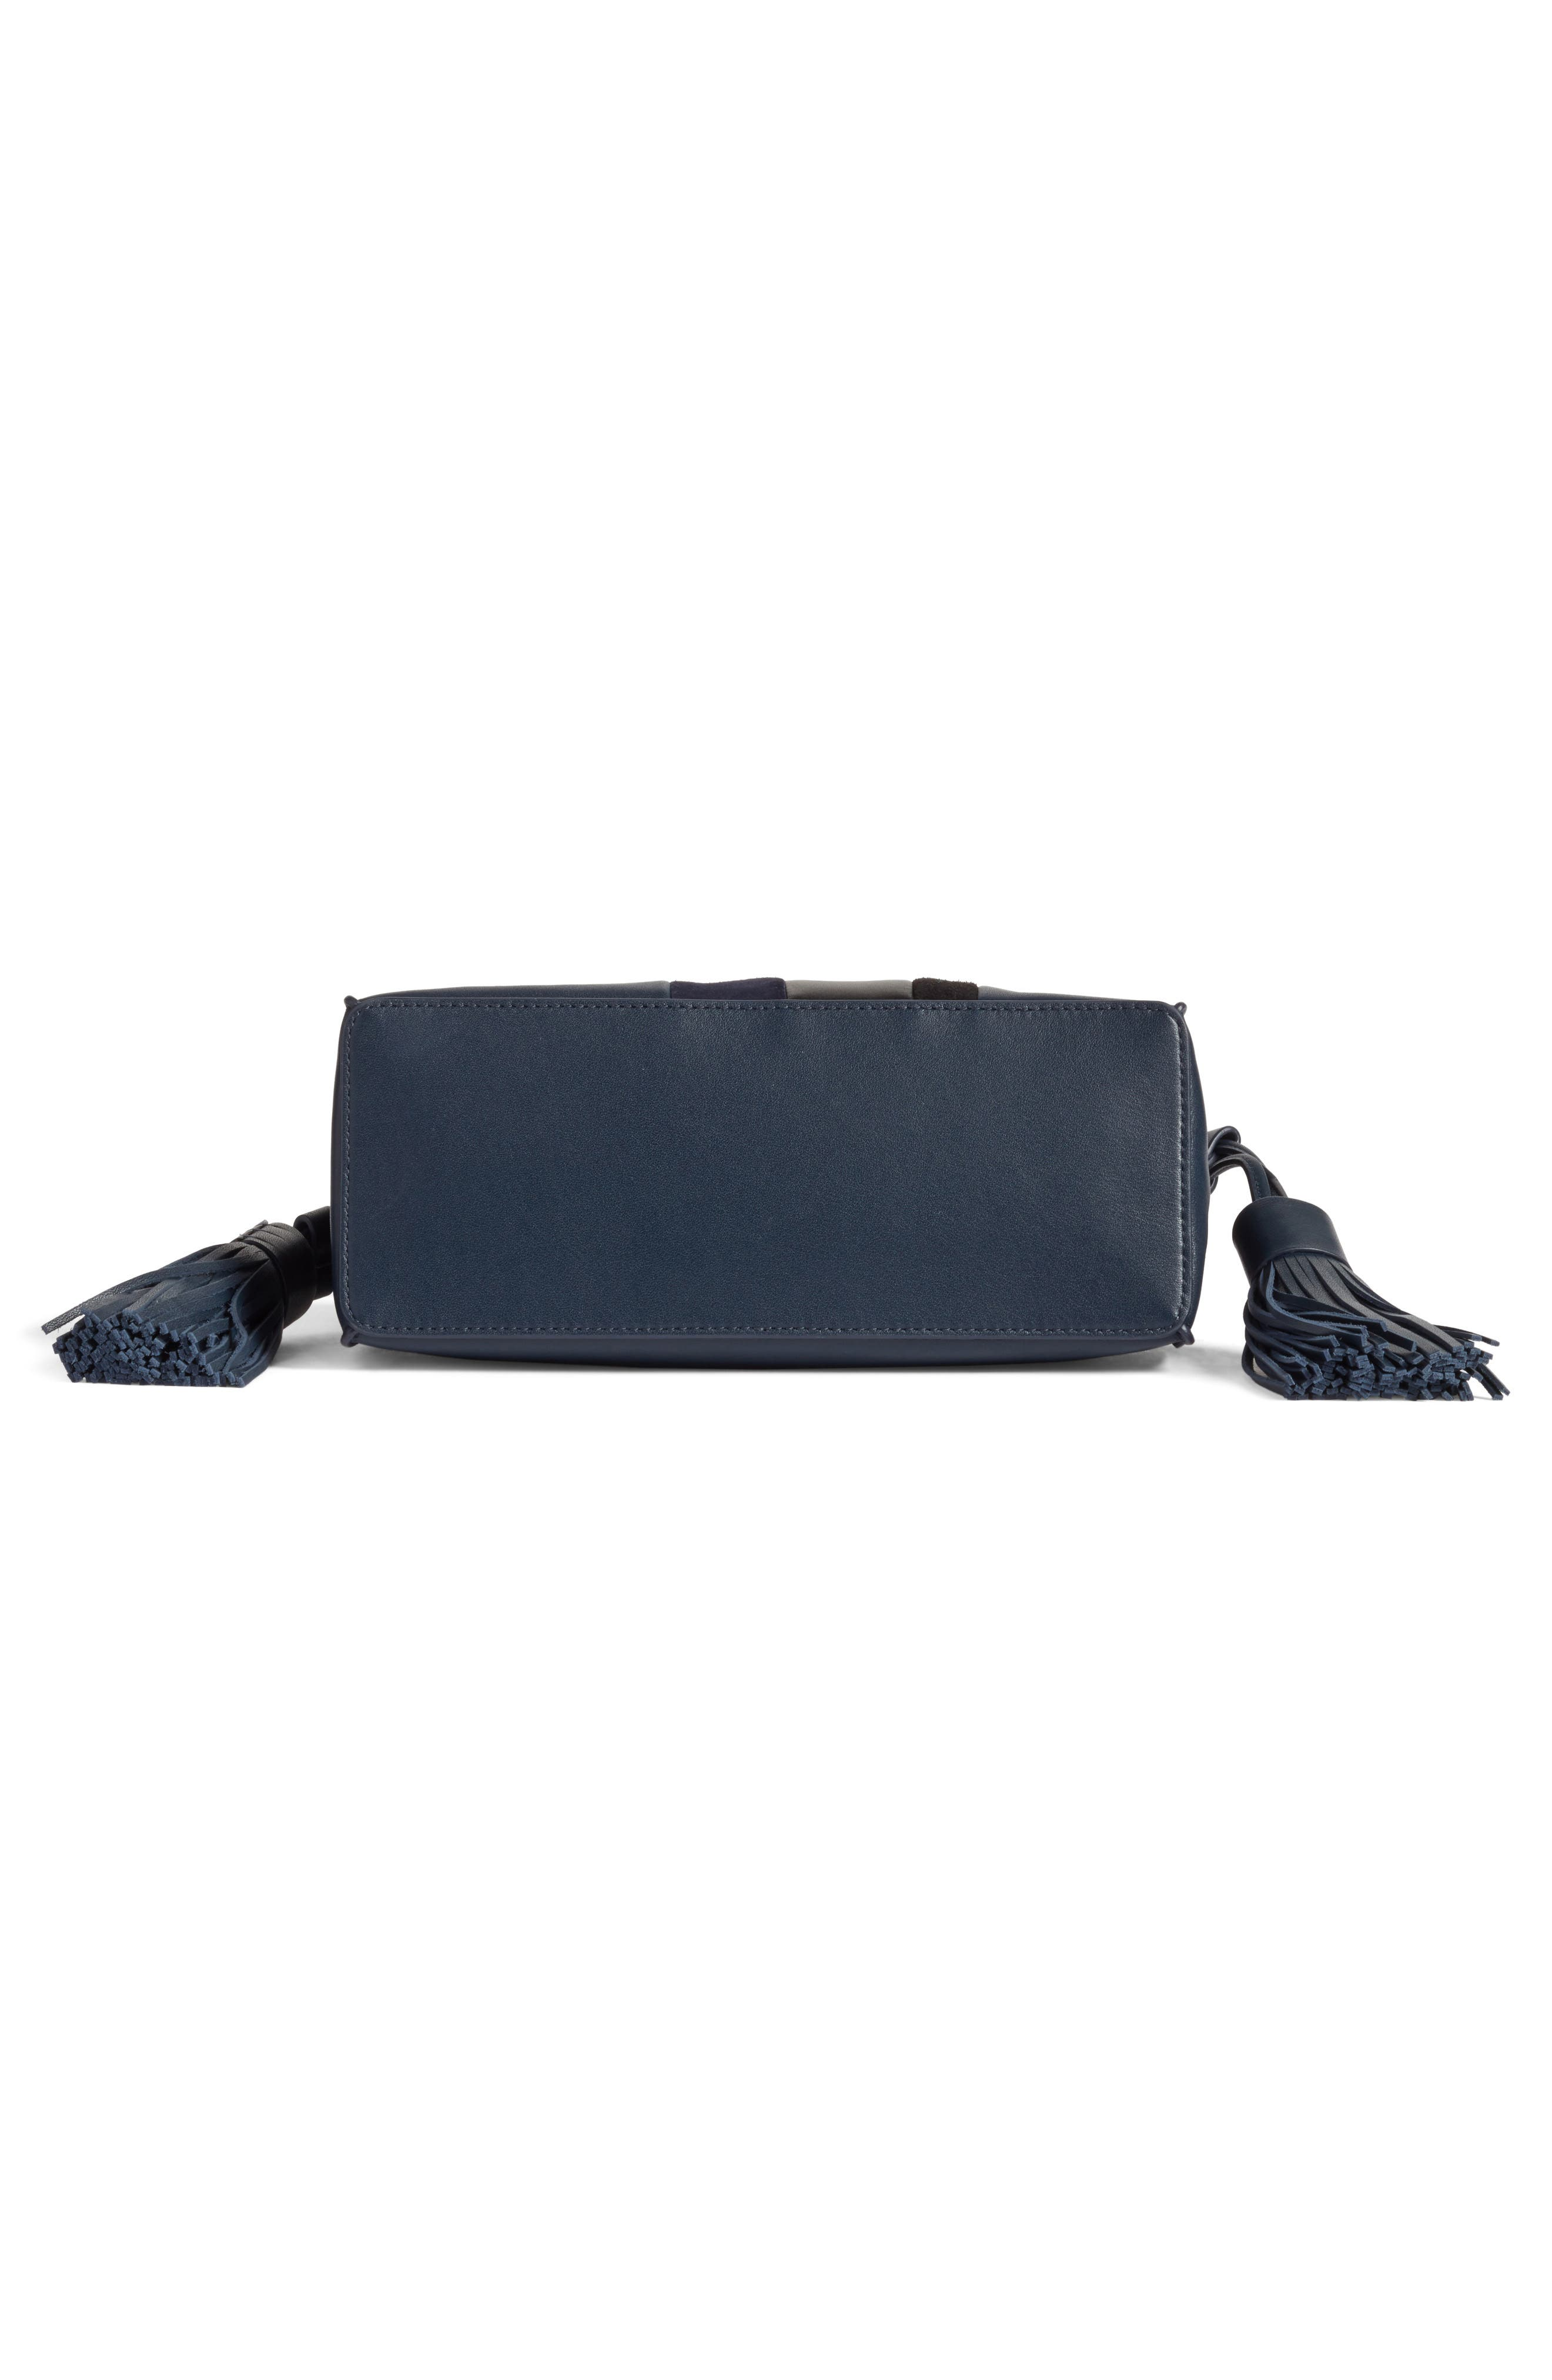 Casey Calfskin Leather & Suede Tassel Crossbody Bag,                             Alternate thumbnail 5, color,                             Marine Blue